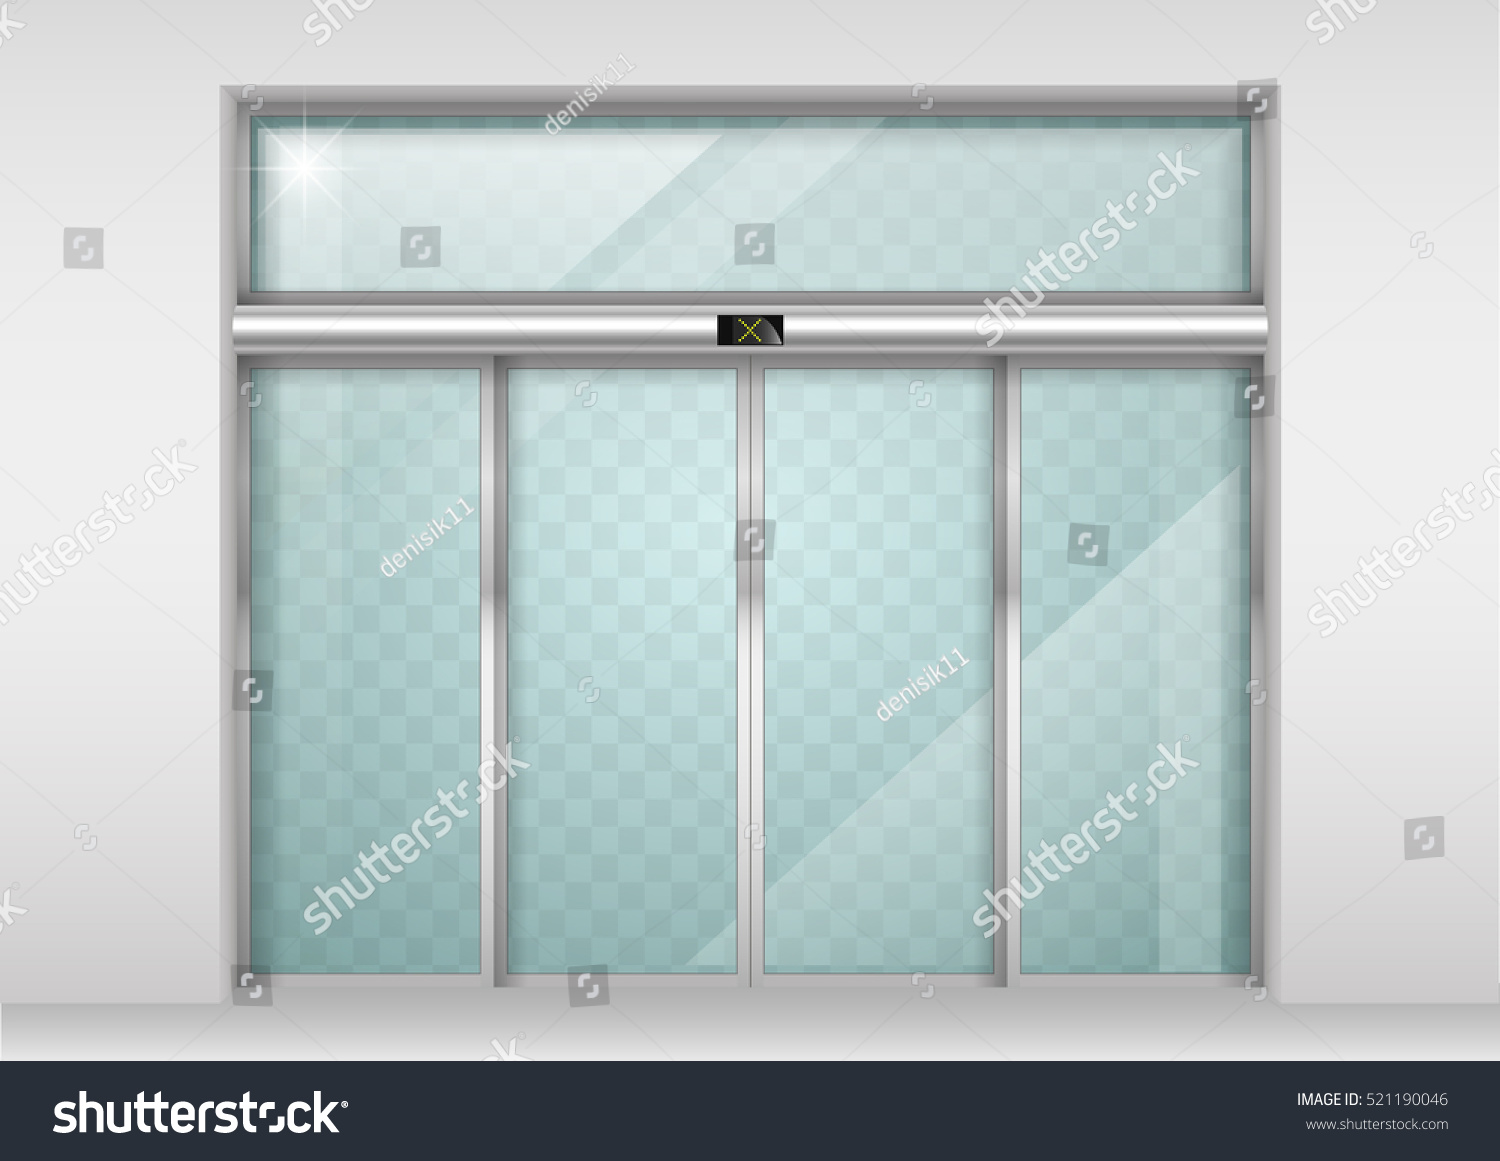 Double sliding glass doors automatic motion stock vector